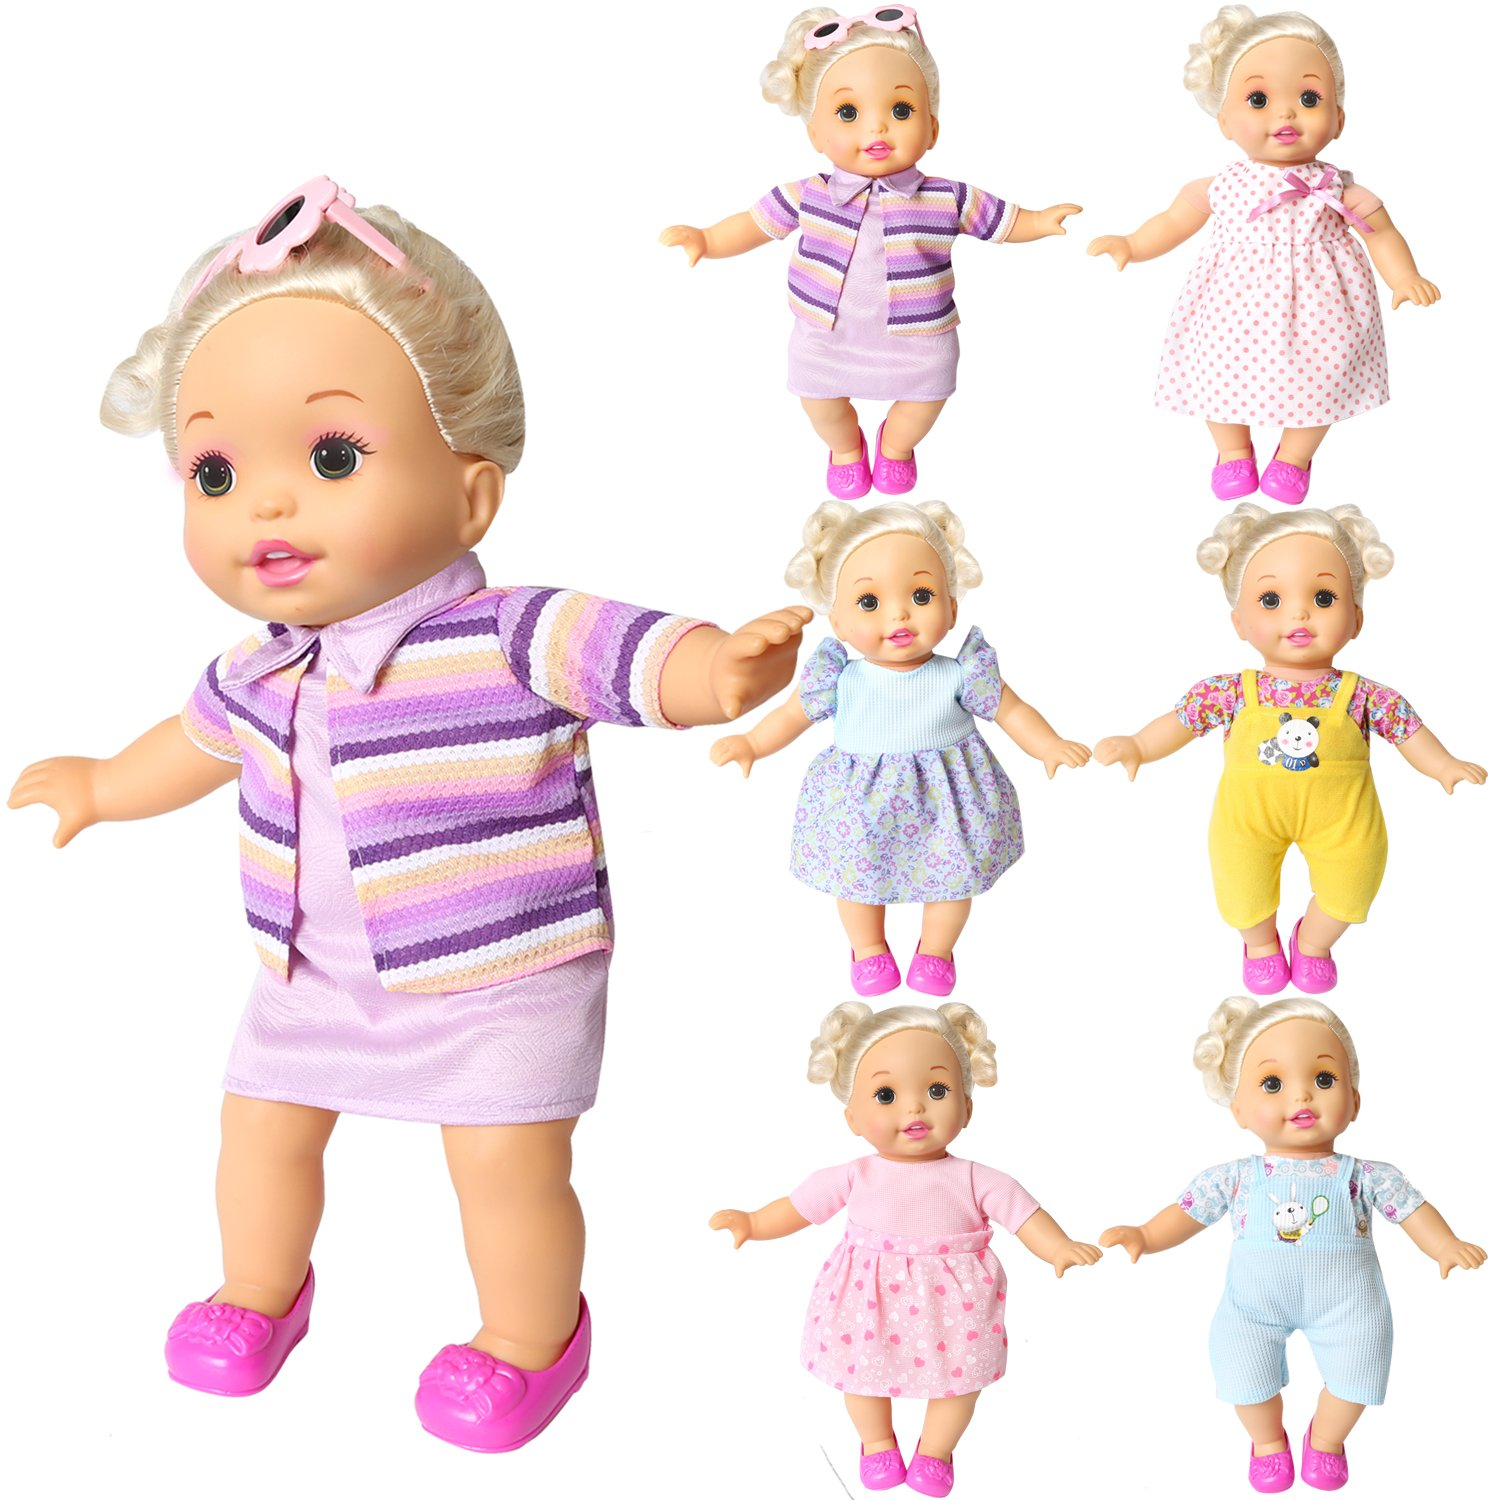 baby alive clothes Set of 6 For 12-14-16 Inch Alive Lovely Baby Doll Clothes Dress Outfits Costumes Dolly Pretty Doll Cloth Handmade Girl Christmas Birthday Gift (16) shantou city guangdong province.